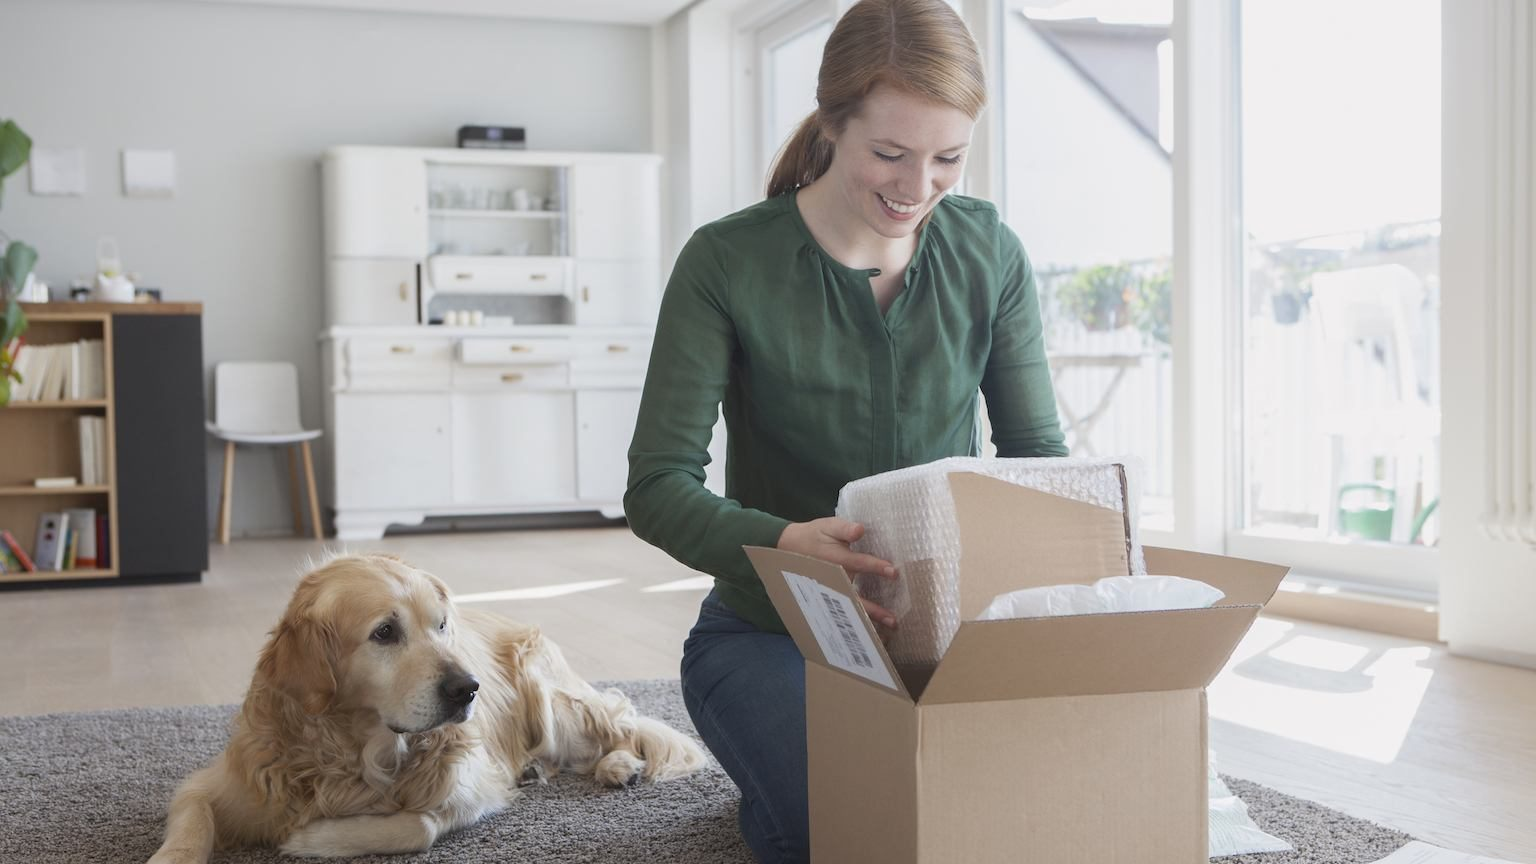 Lady opening online shopping delivery with pet dog by her side.